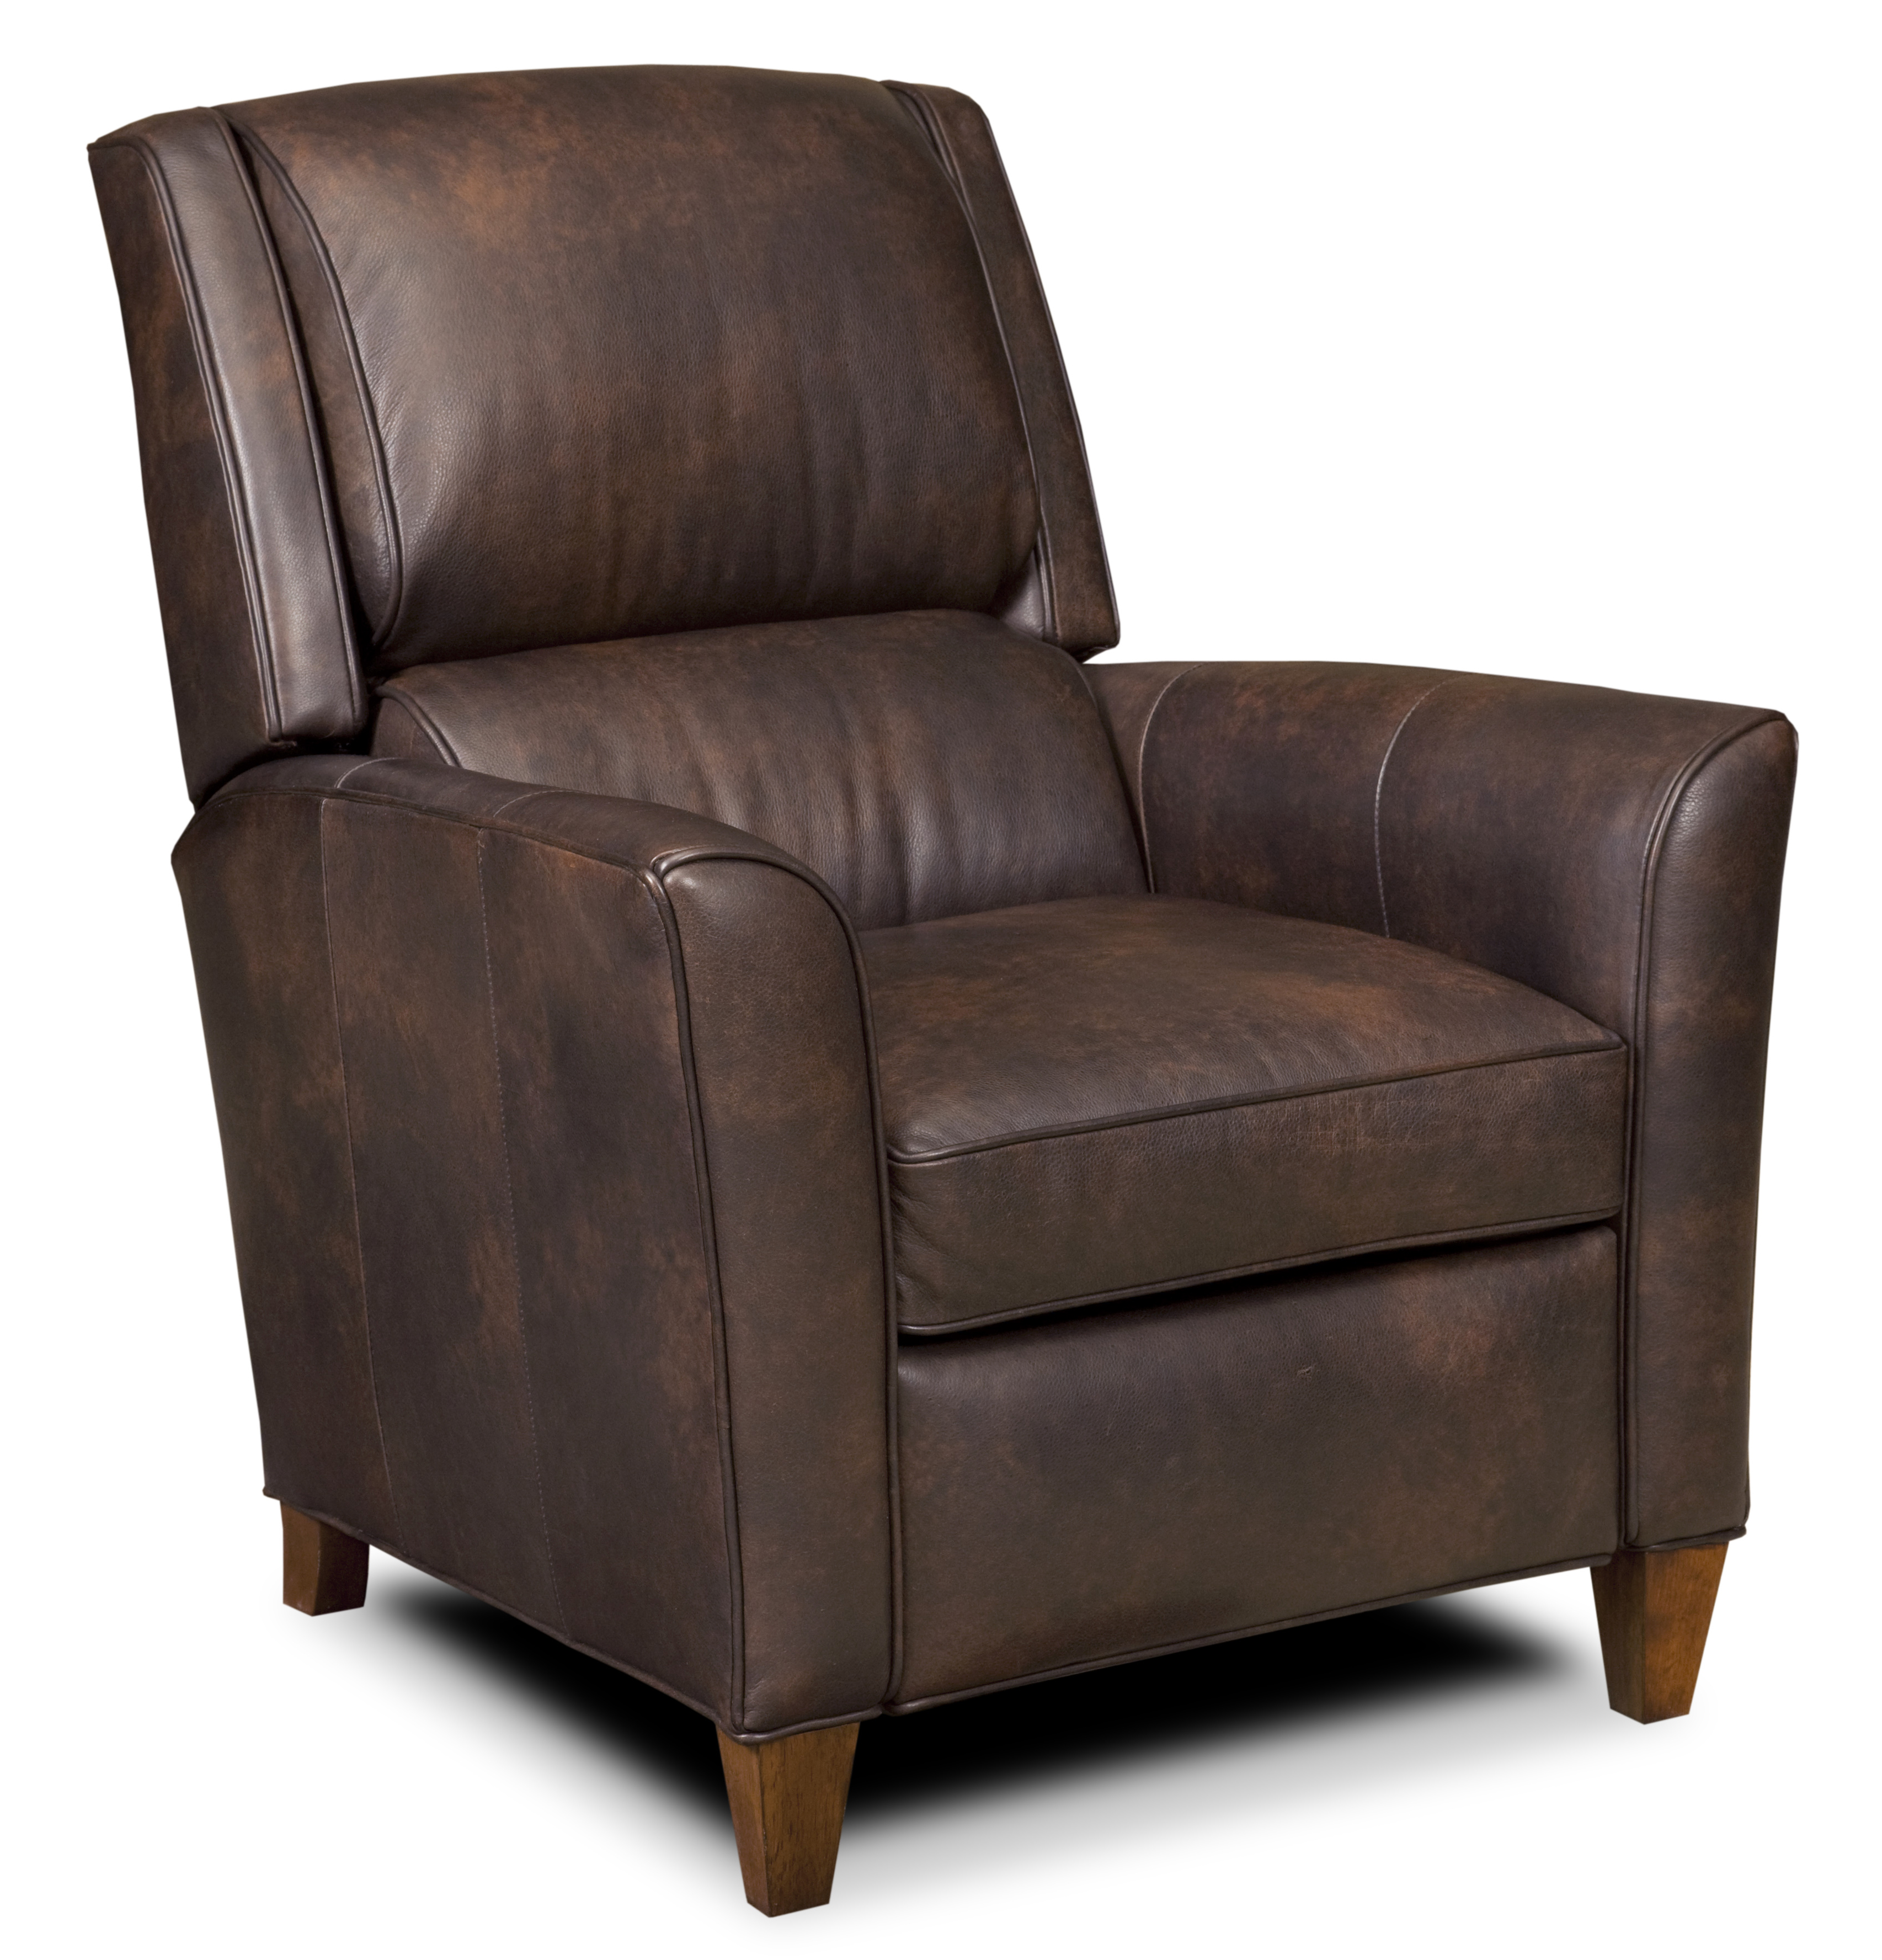 High Quality Leather Recliner From National Name Brands